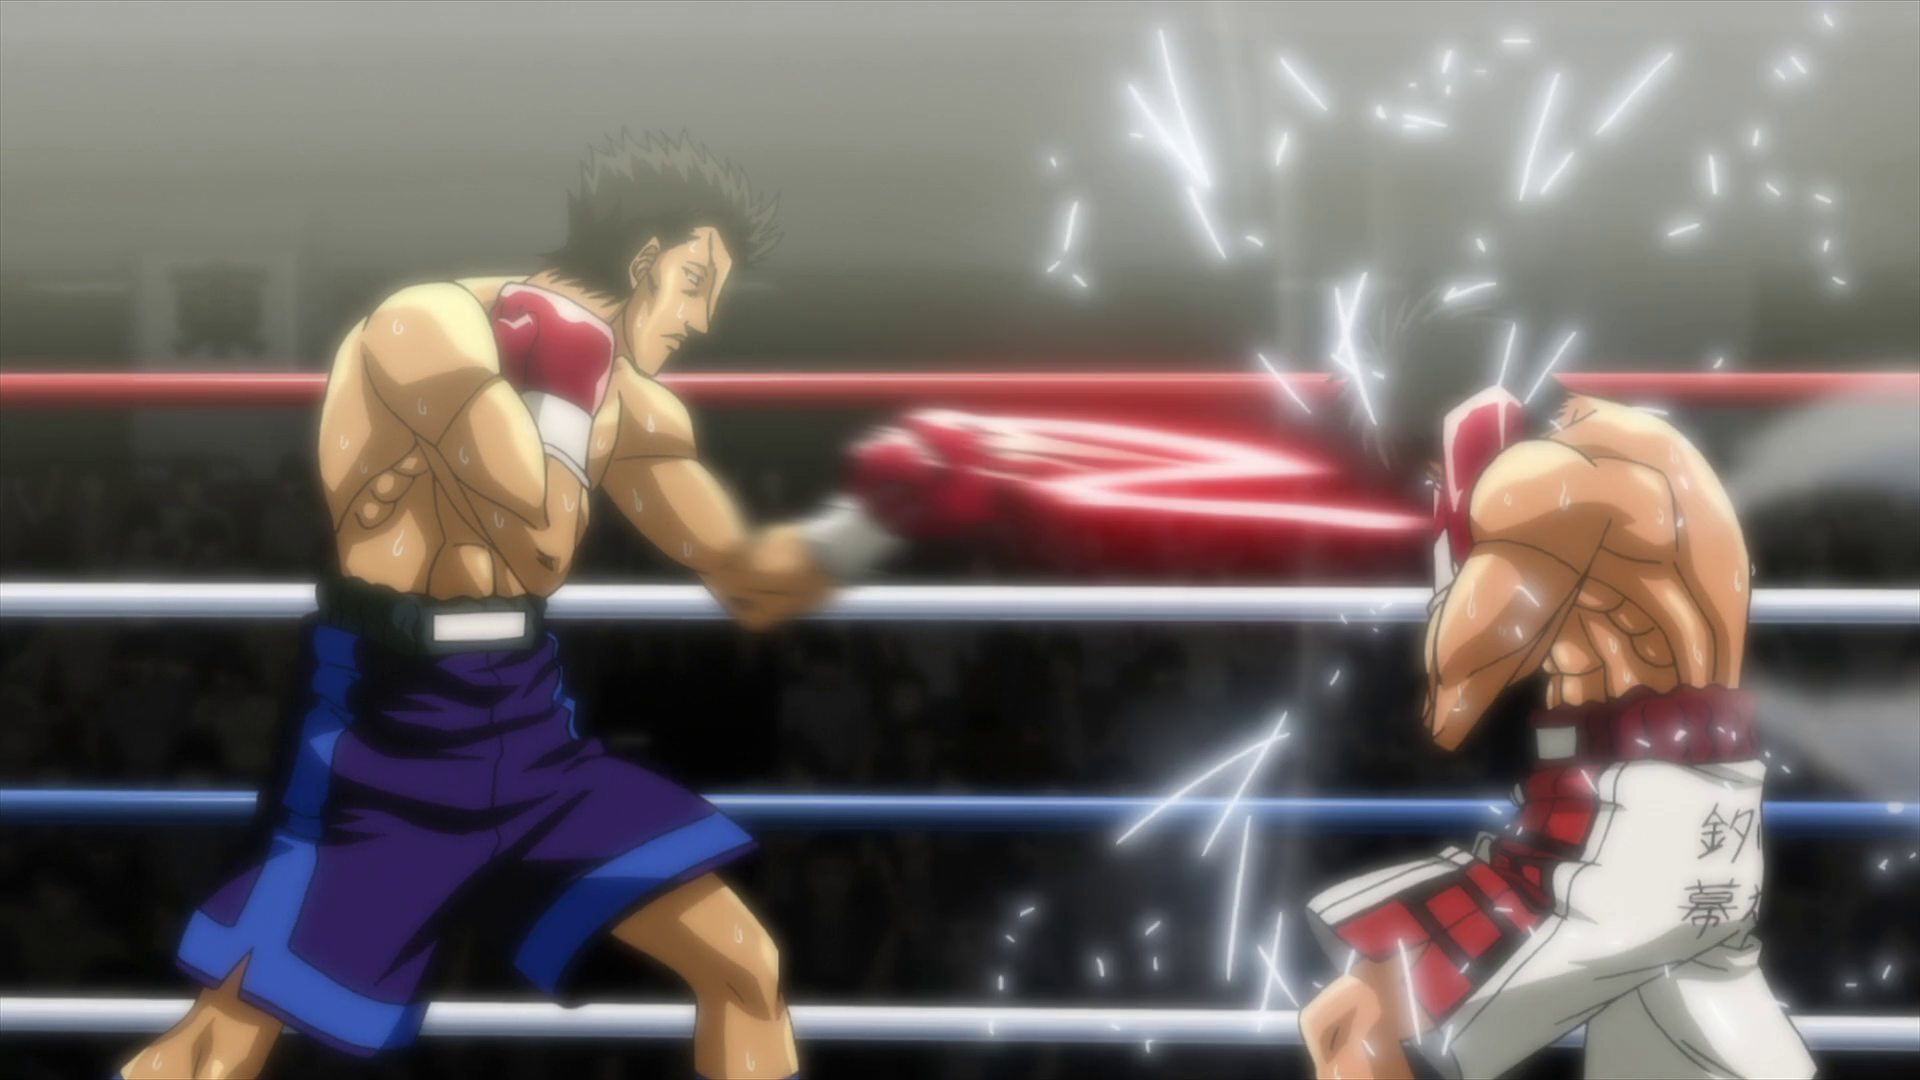 Image Bullet Png Wiki Ippo Fandom Powered By Wikia